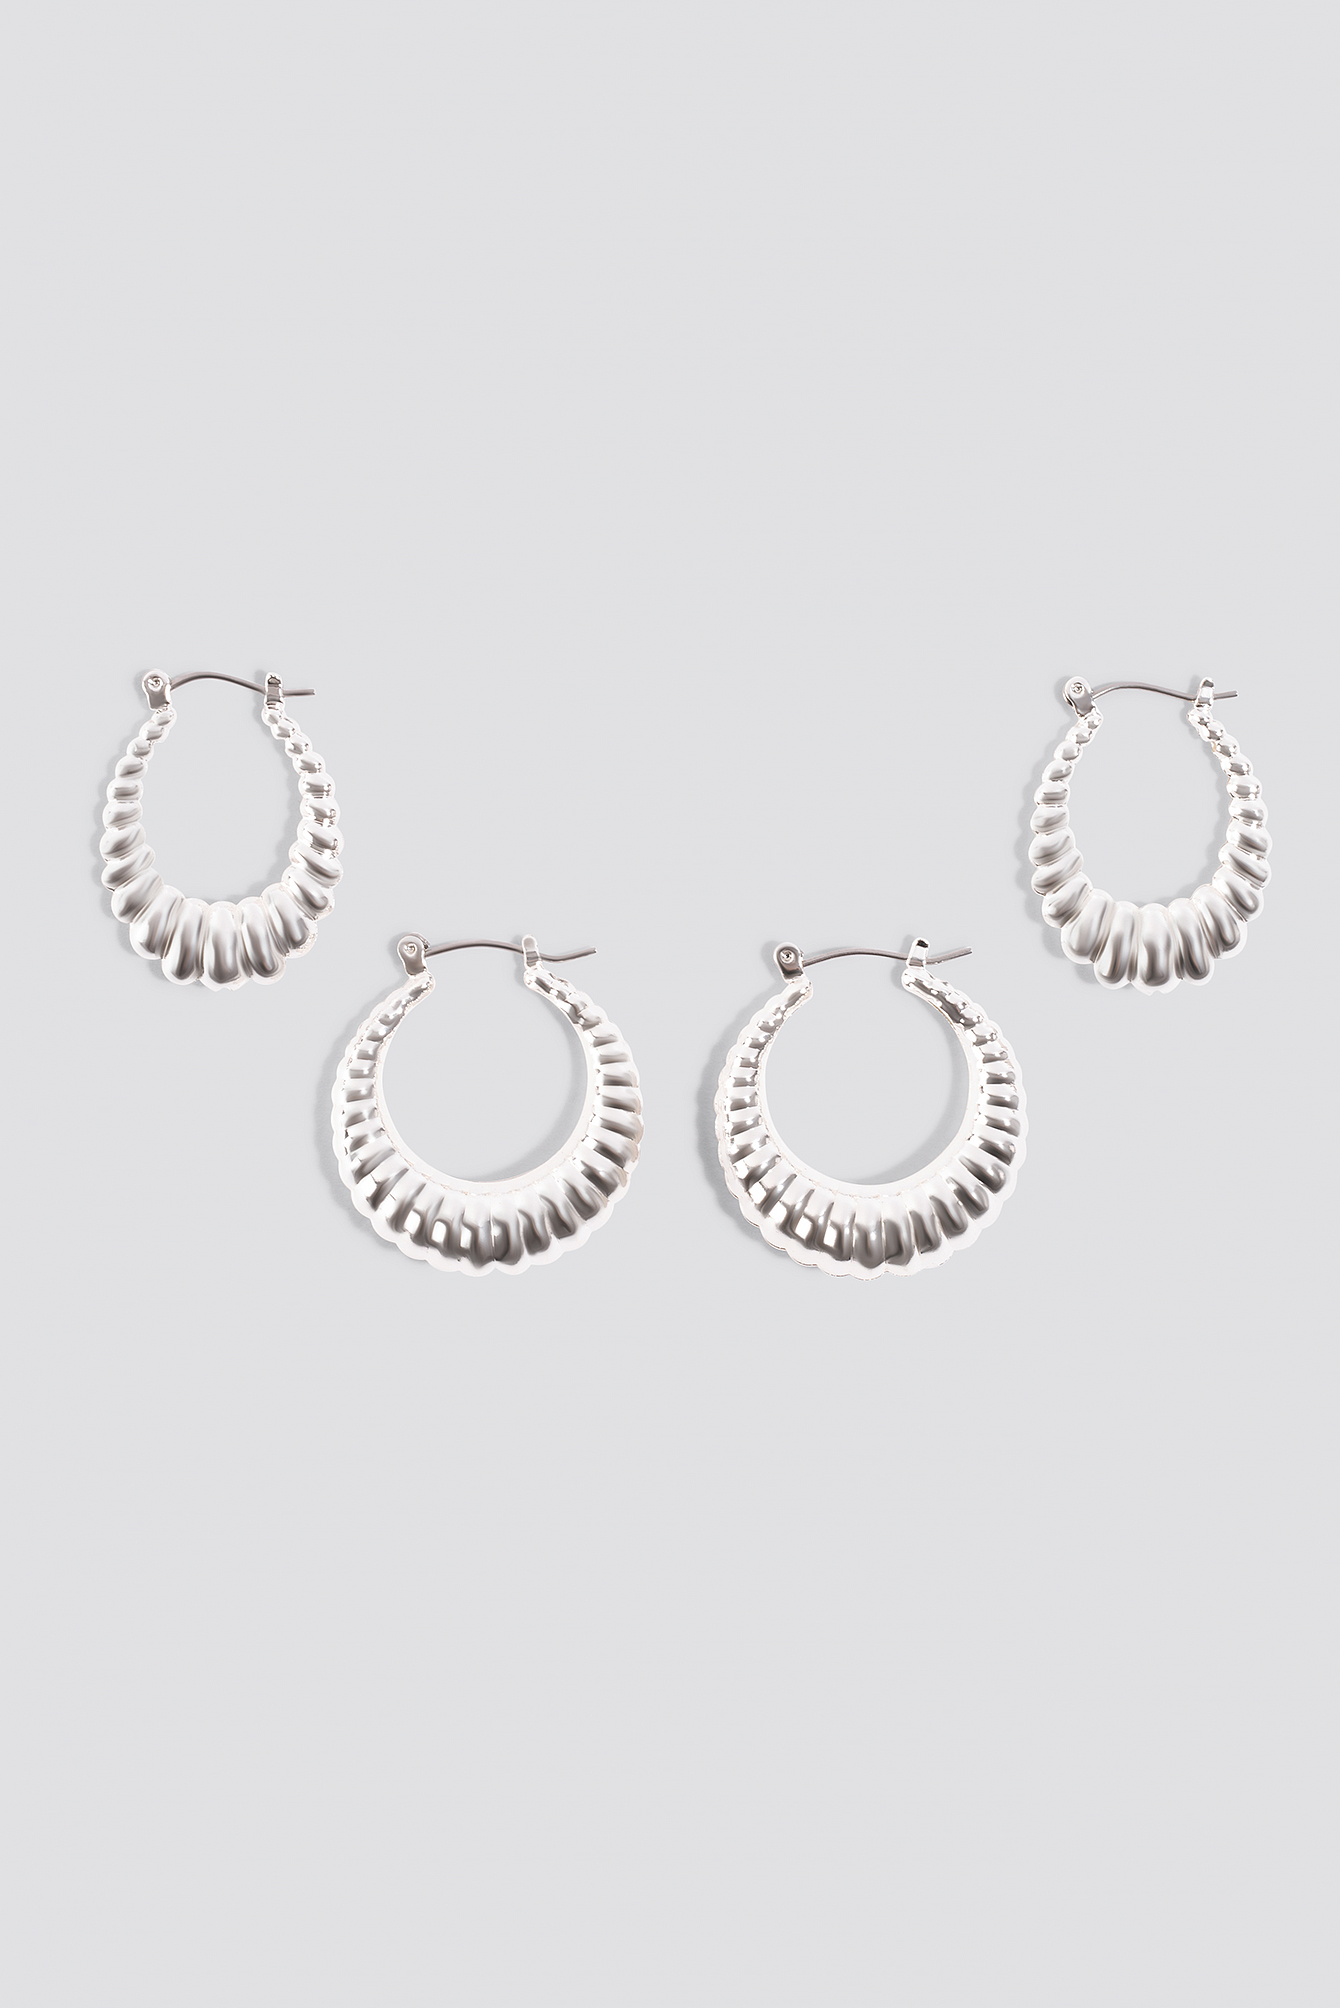 reputable site 269e4 7bcee Double Pack Small Chubby Hoops by Na Kd Accessories